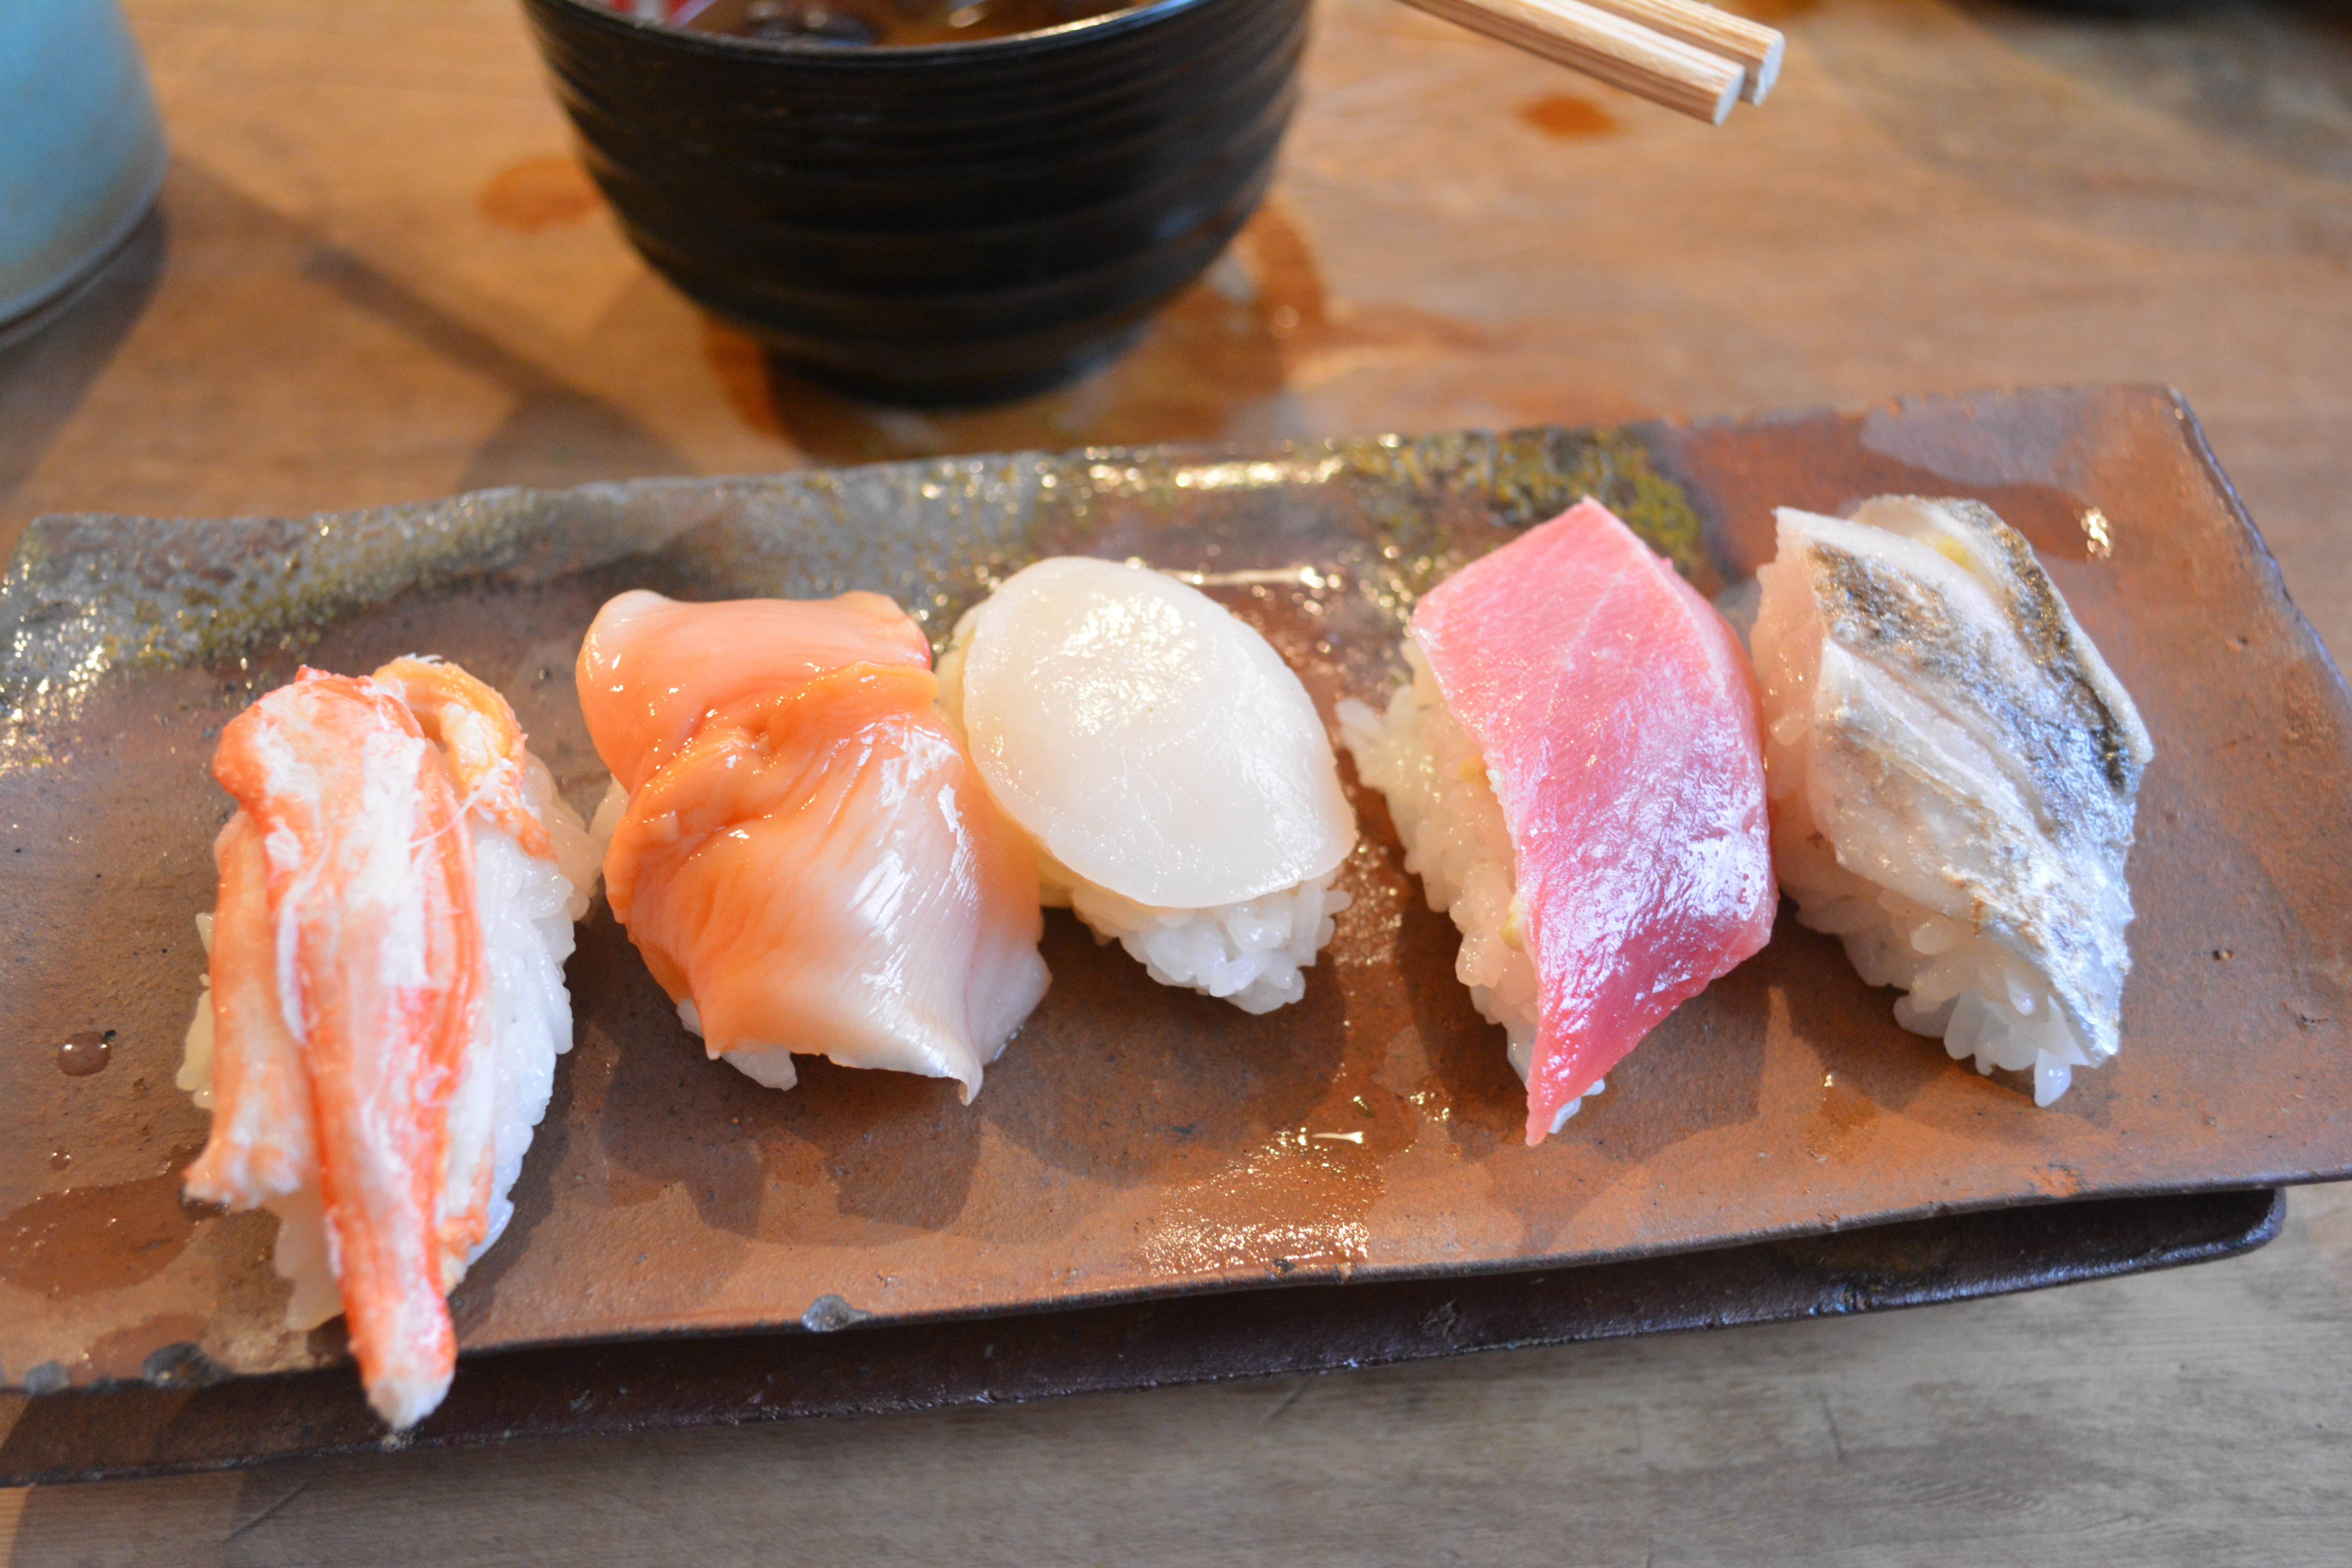 A cut above: A sushi course at Endo's is worth waiting in line for.   J.J. O'DONOGHUE